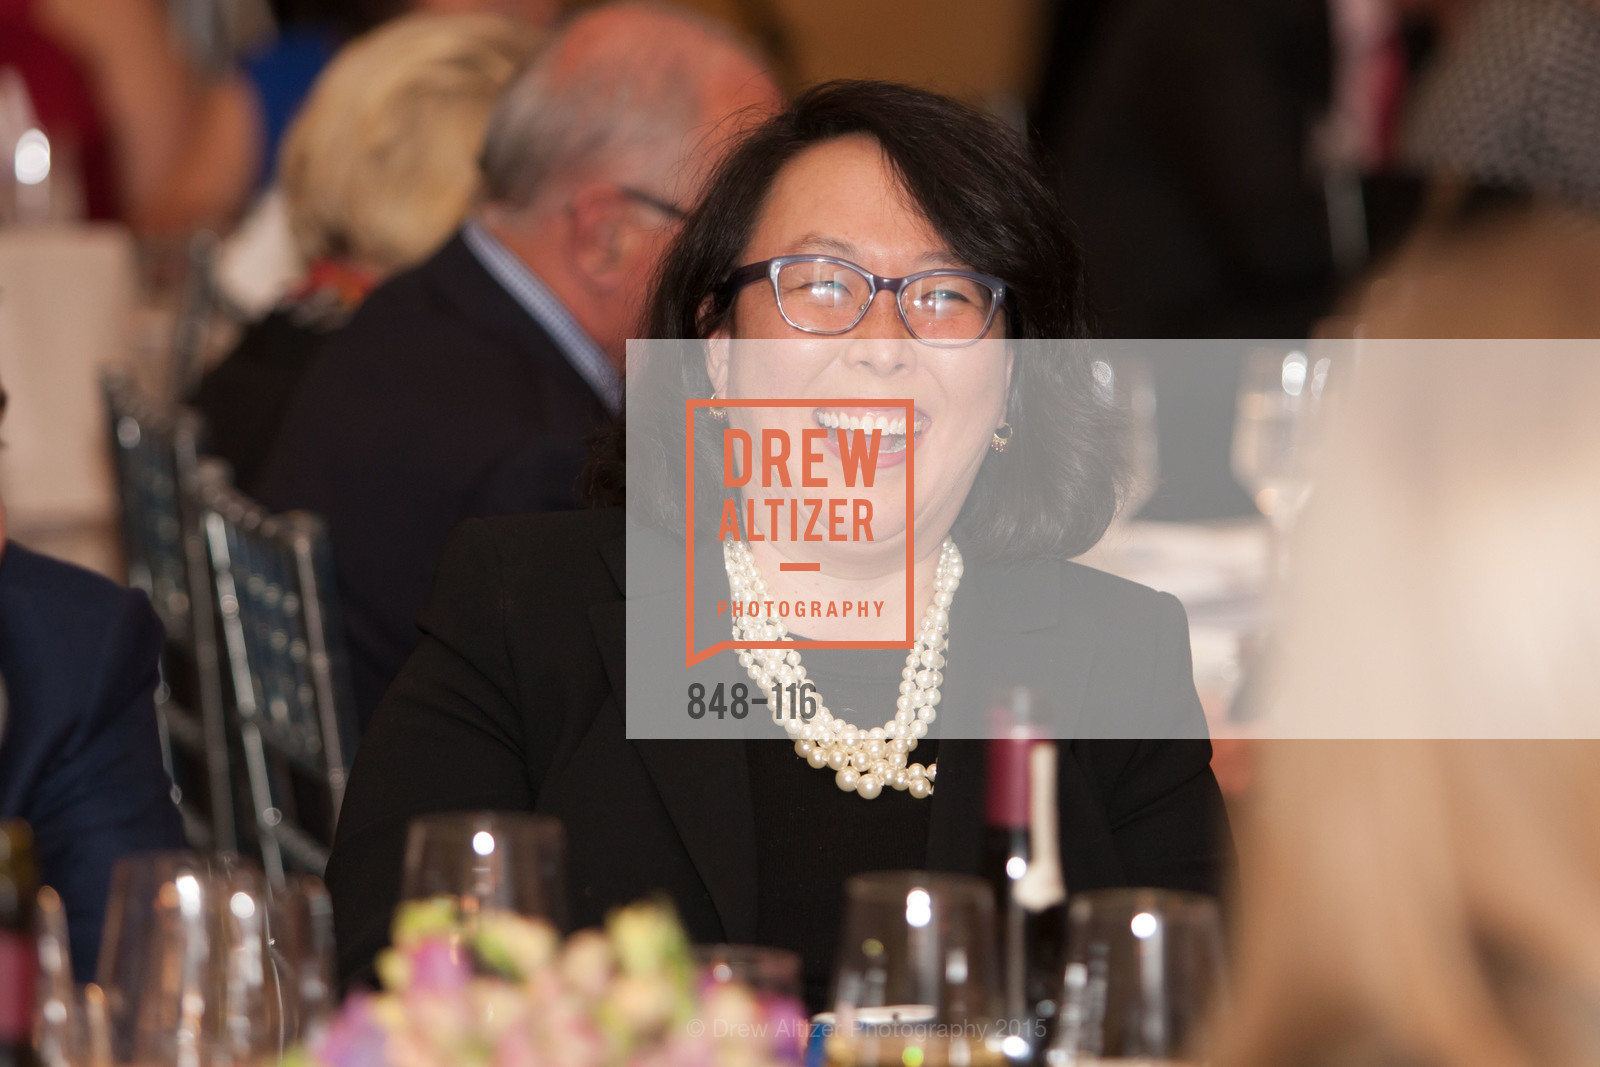 Top picks, Aspire Public Schools 2nd Annual Gala, May 20th, 2015, Photo,Drew Altizer, Drew Altizer Photography, full-service agency, private events, San Francisco photographer, photographer california